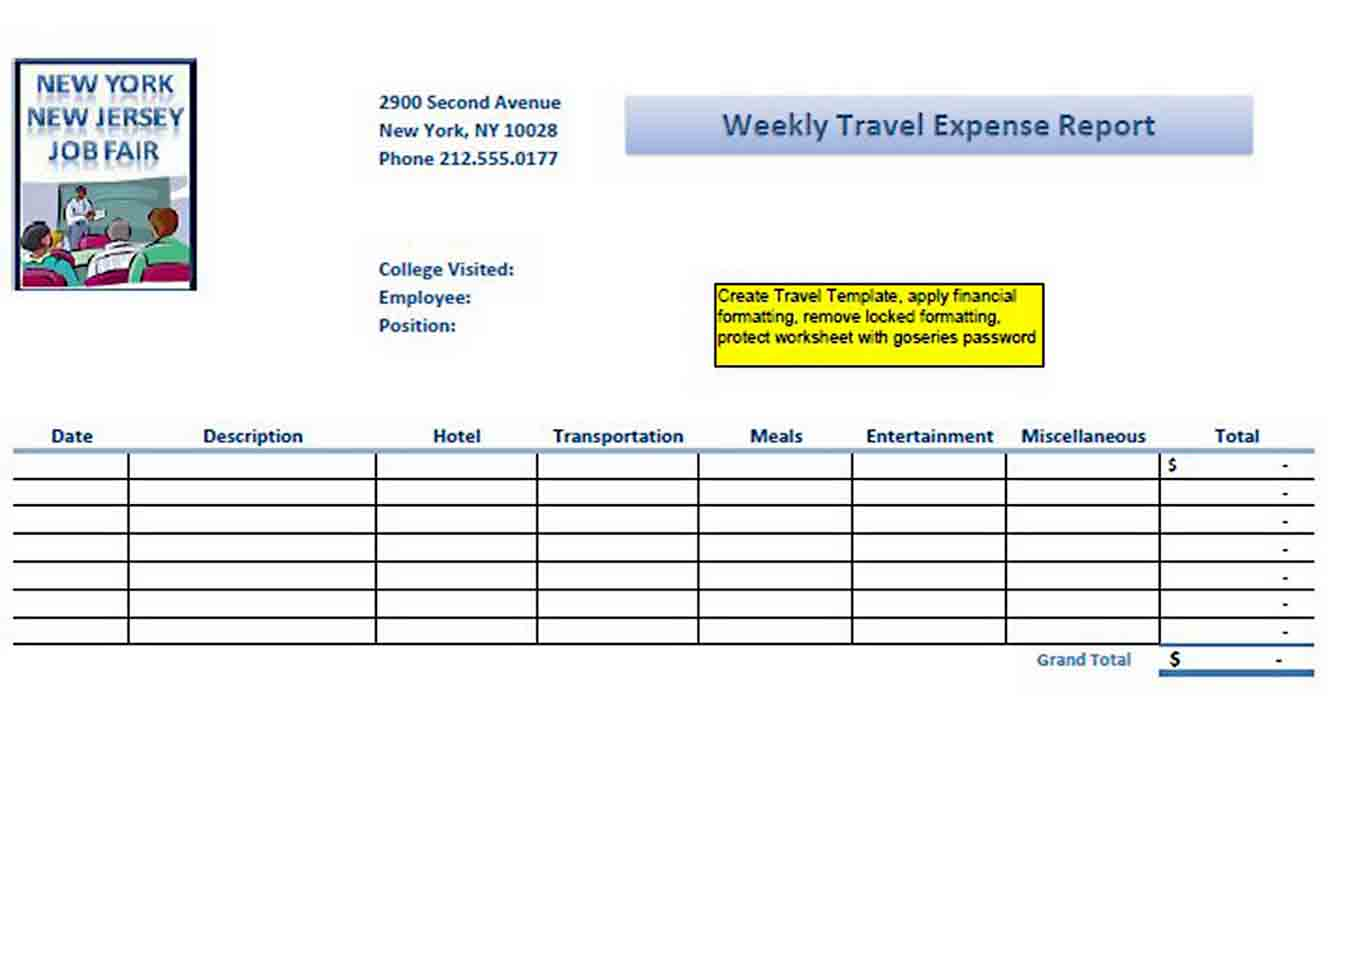 Weekly Travel Expense Report sample